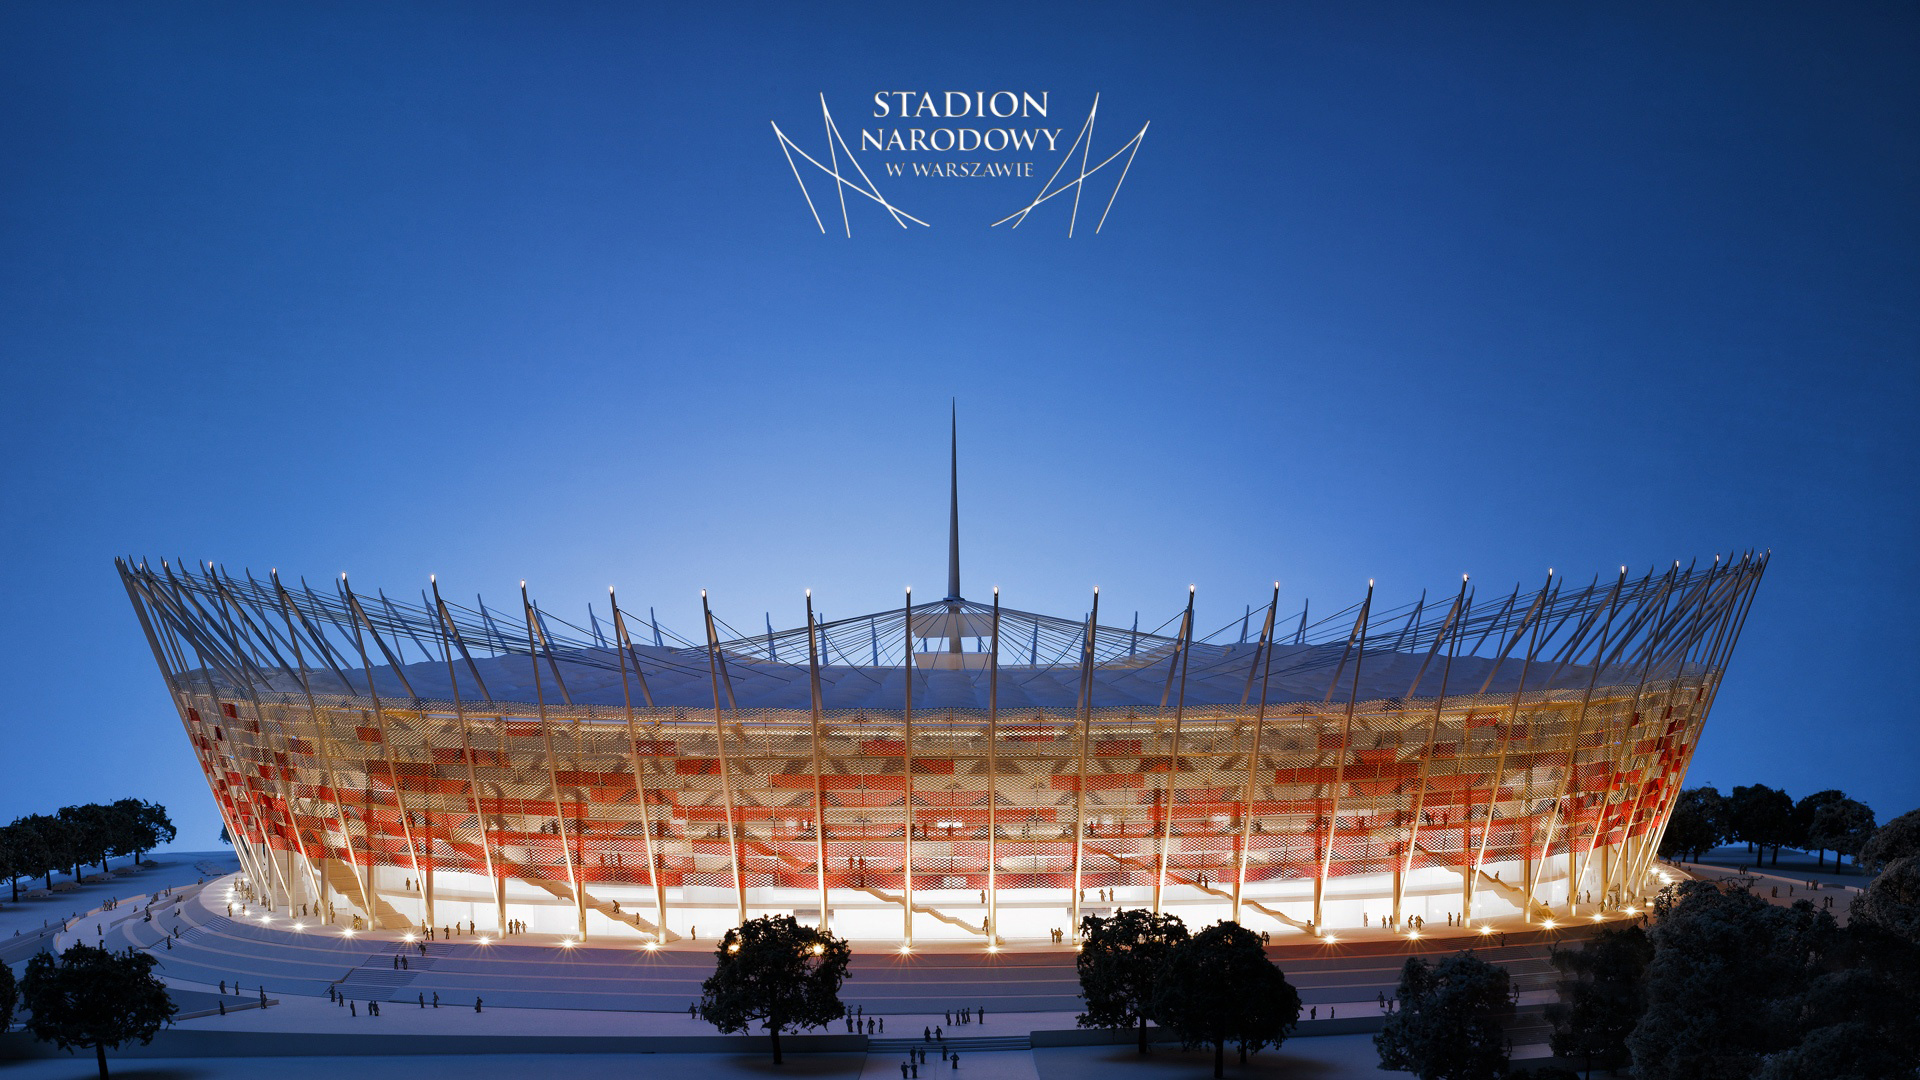 stadium 4K wallpapers for your desktop or mobile screen free